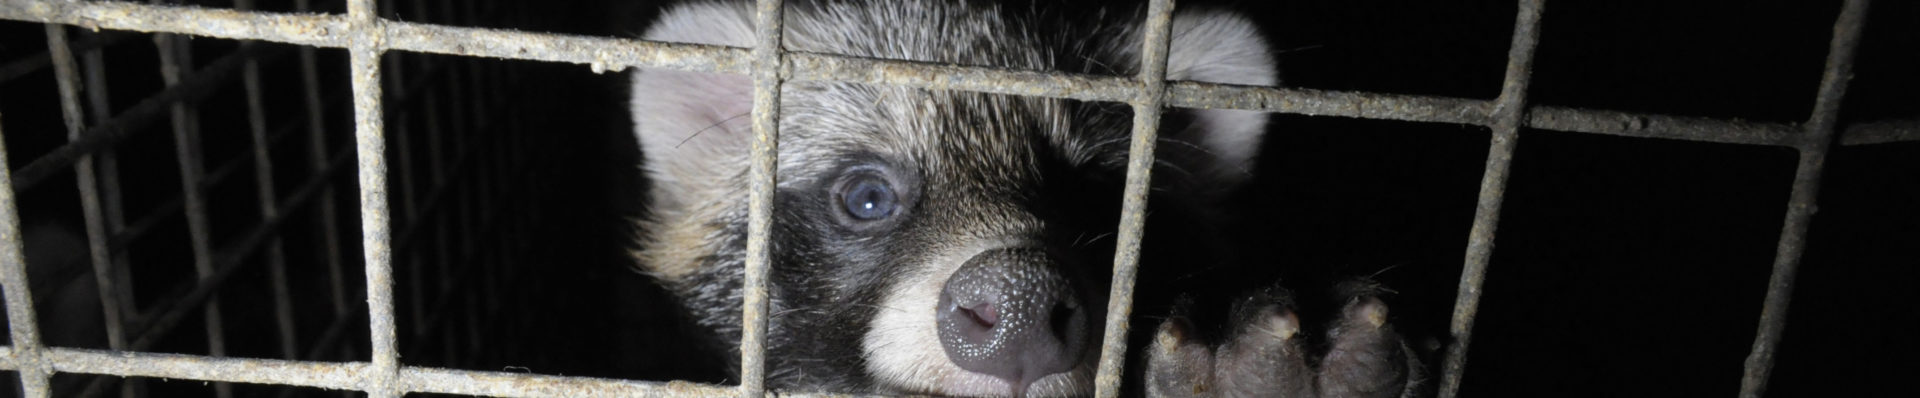 Majority of Czechs in favor of fur farming ban